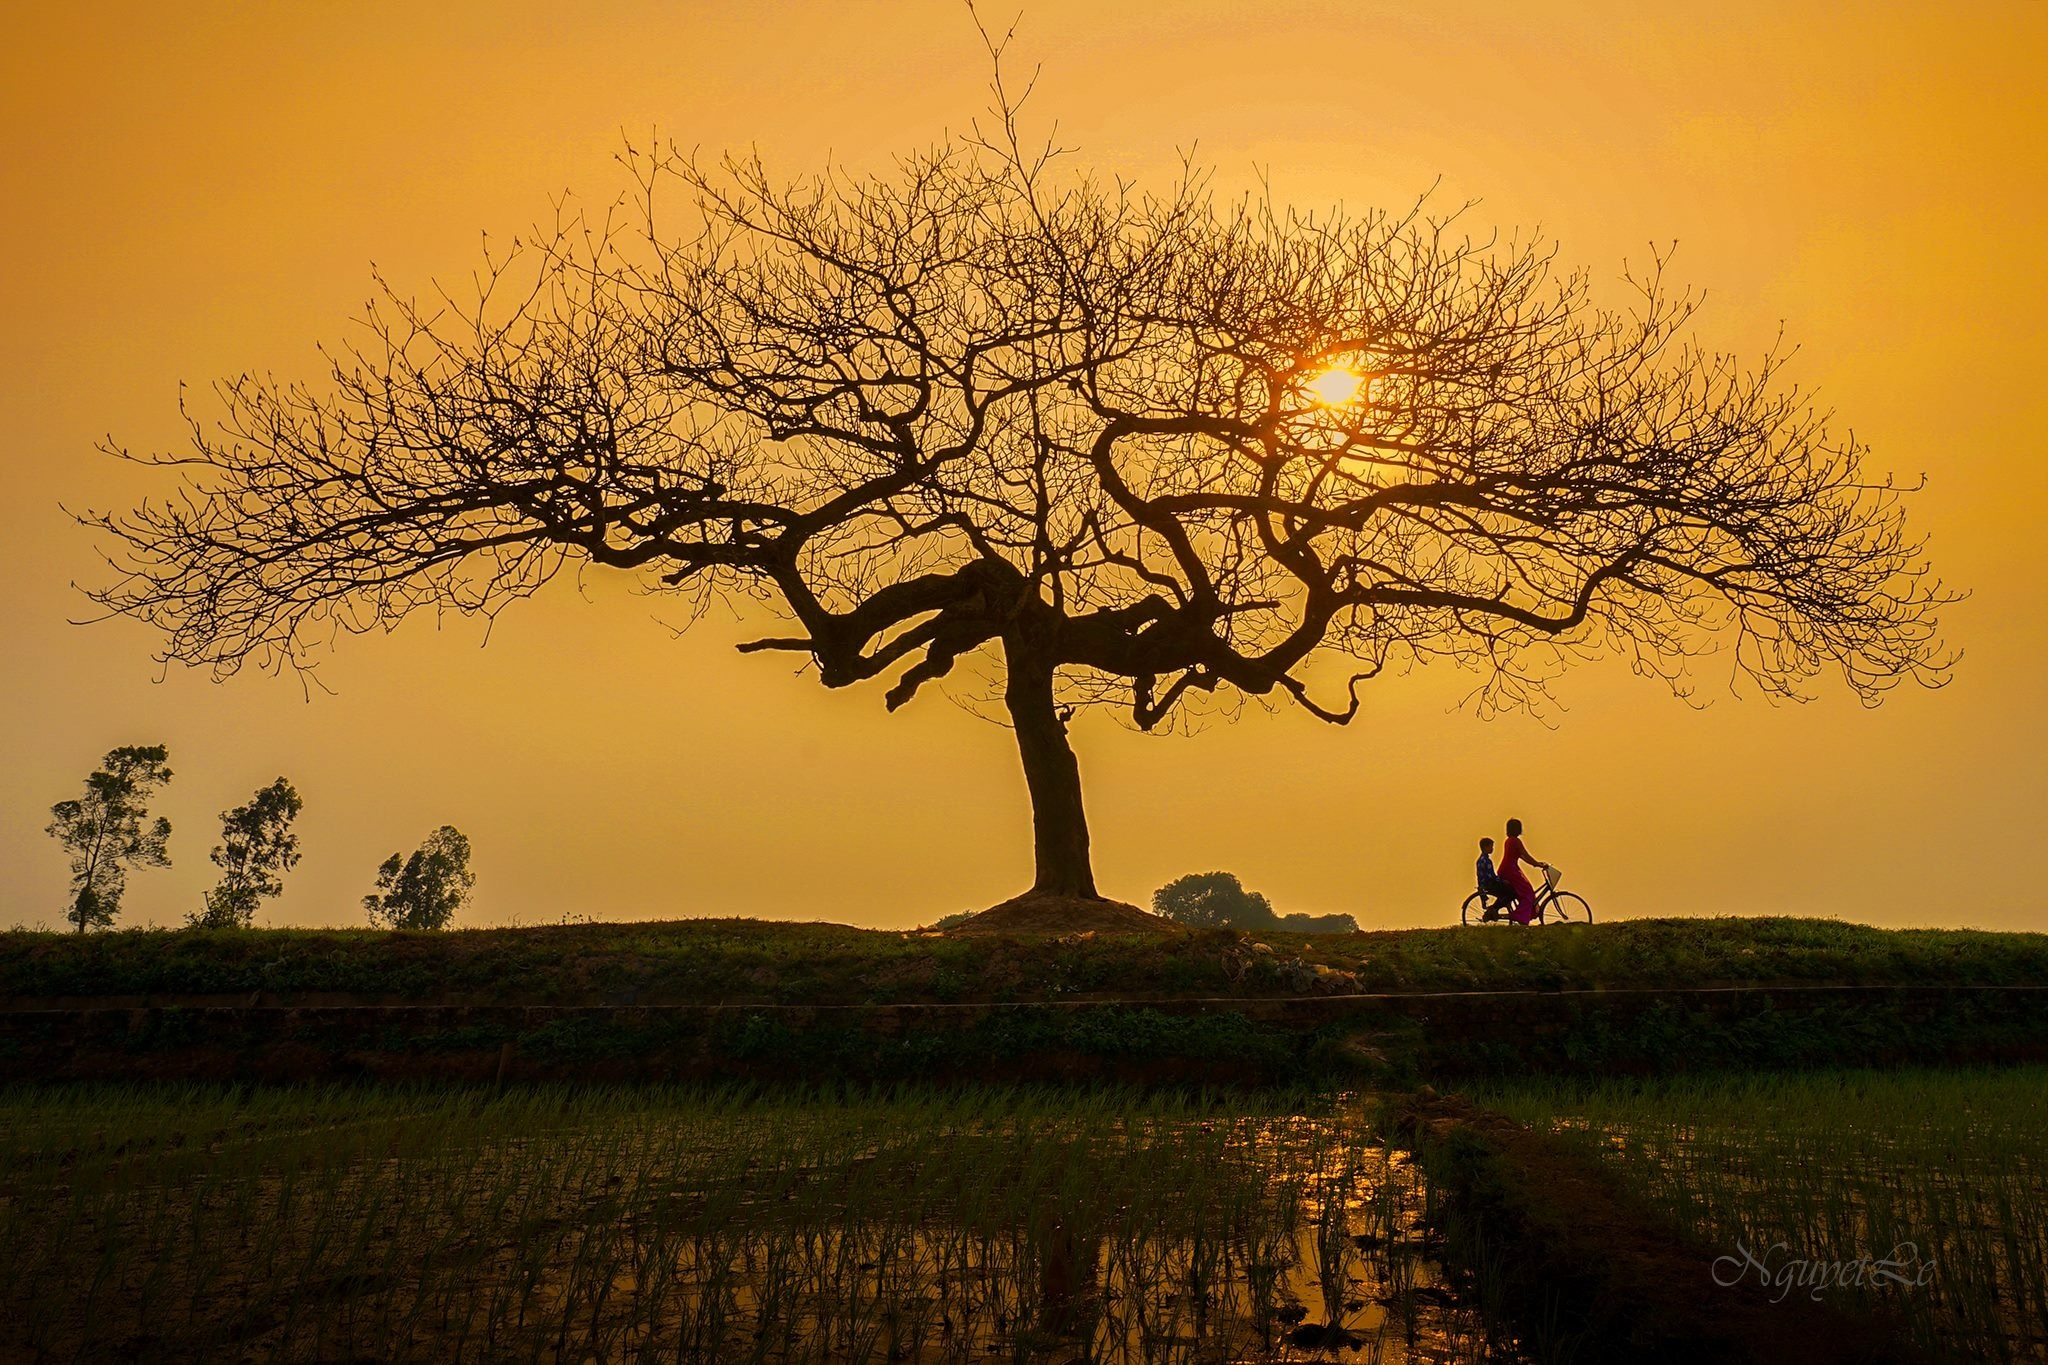 Coming home under sunset (countryside of Vietnam) by Nguyet Le